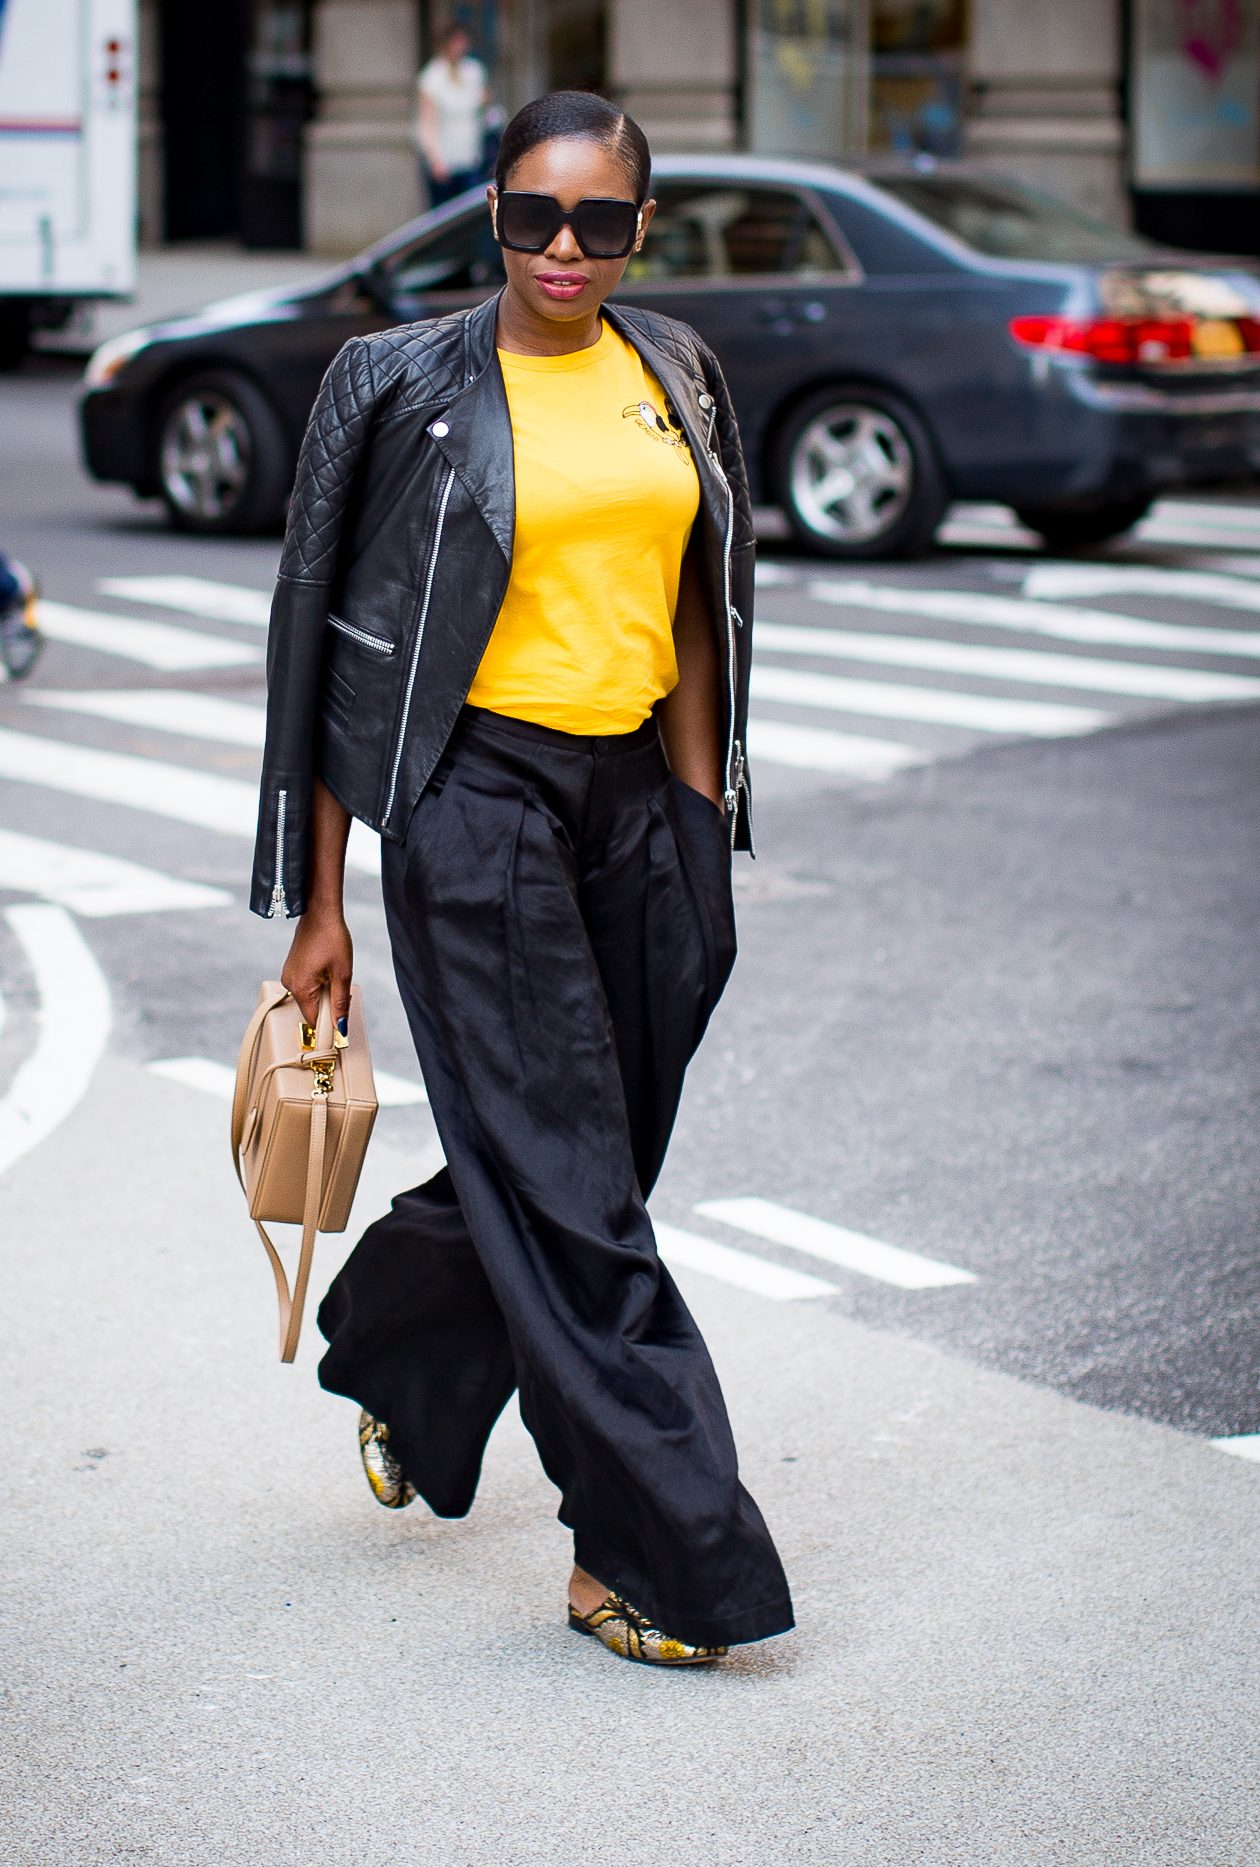 BLACK BIKER JACKET, WIDE LEG PANTS AND YELLOW TEE